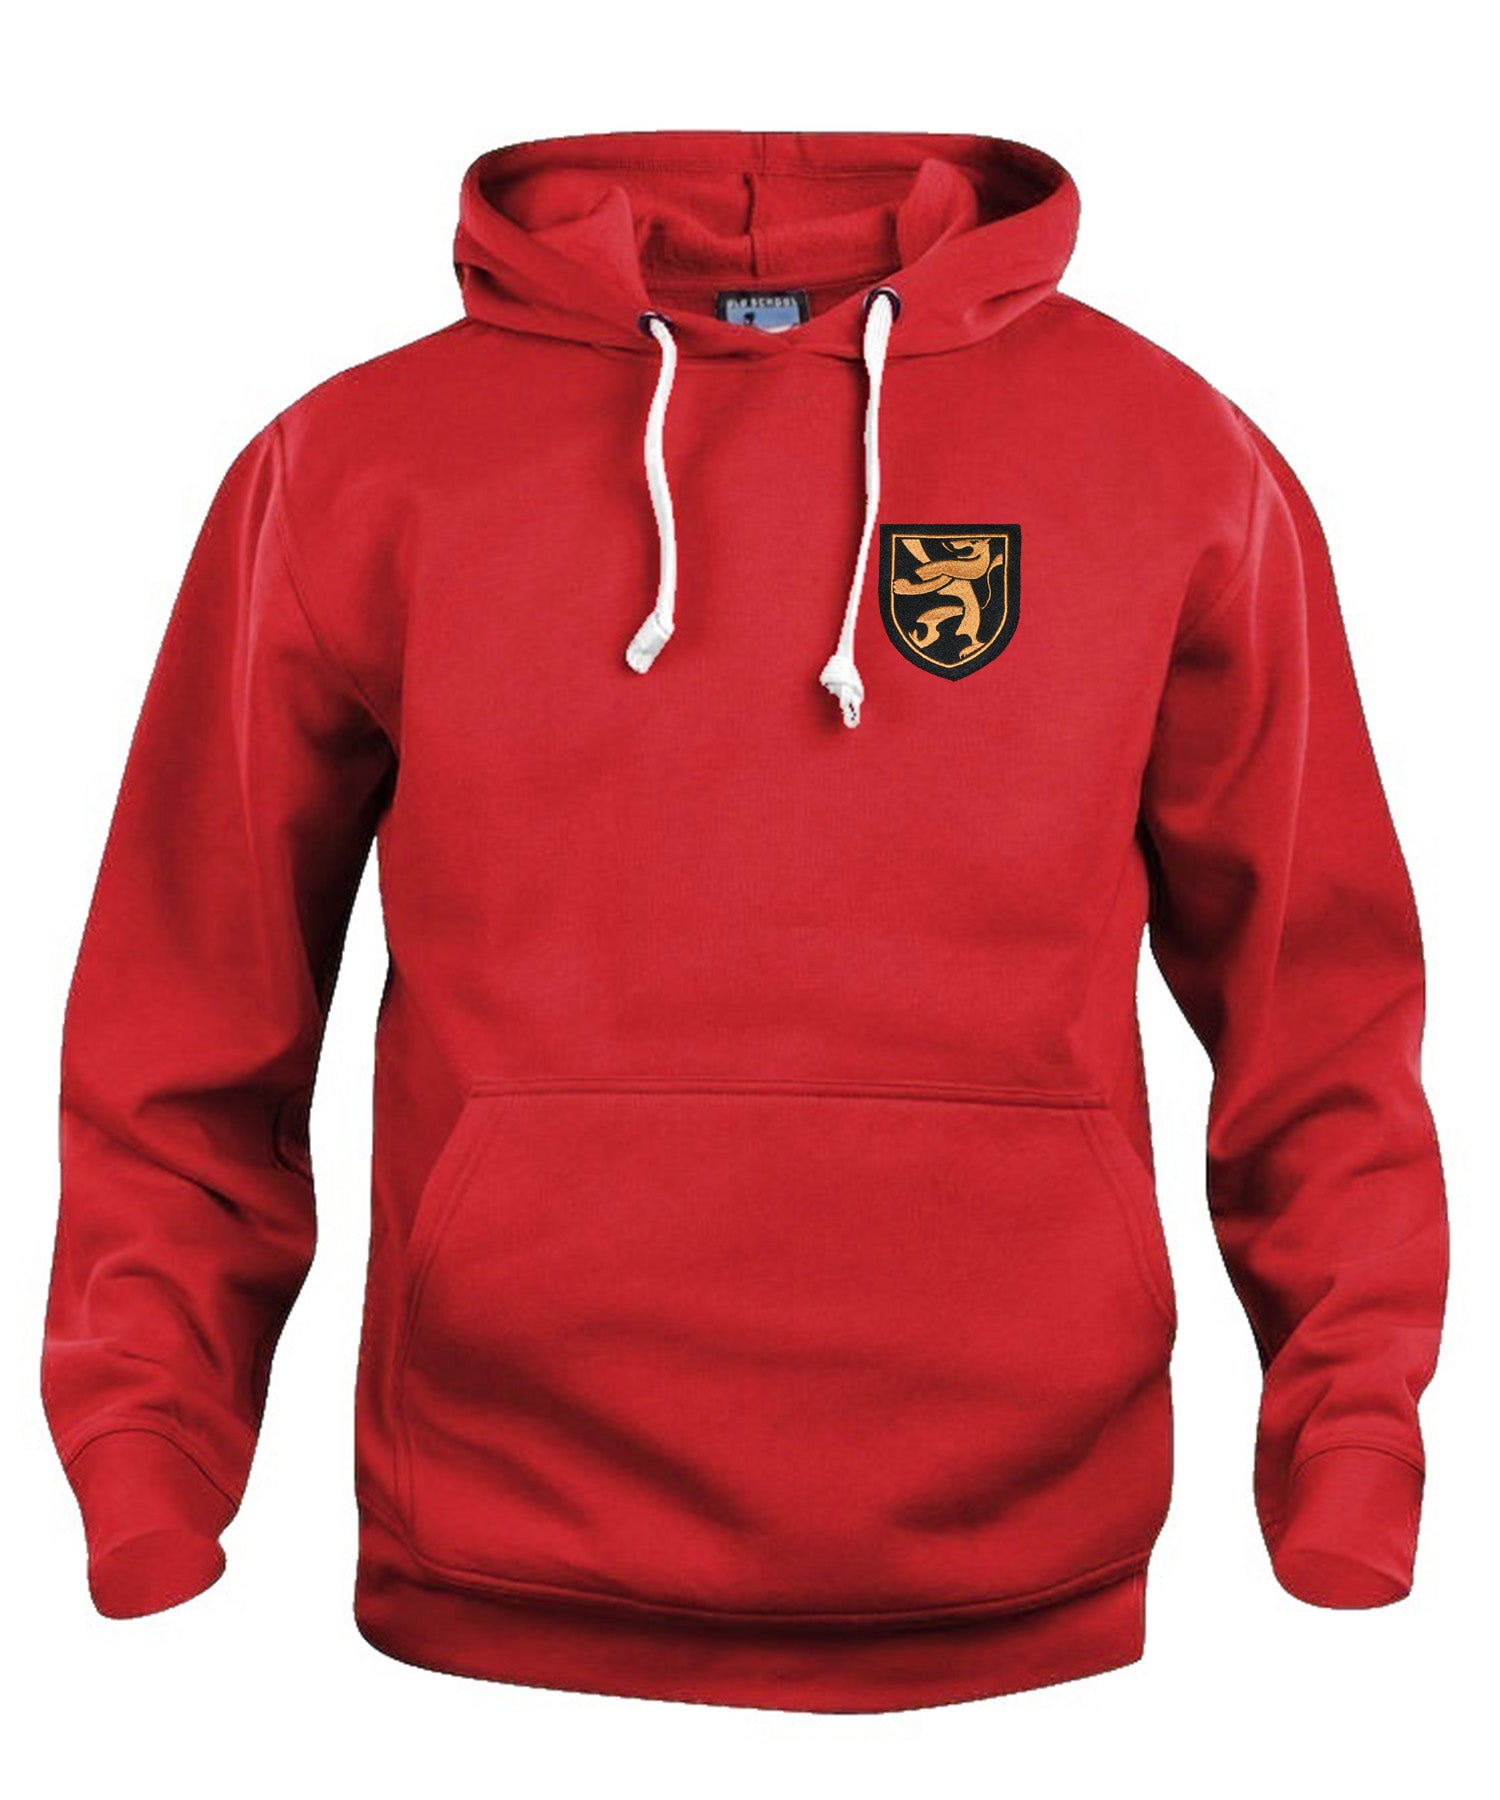 Belgium 1960's Football Hoodie Sizes S-XXXL Embroidered Logo - Old School Football